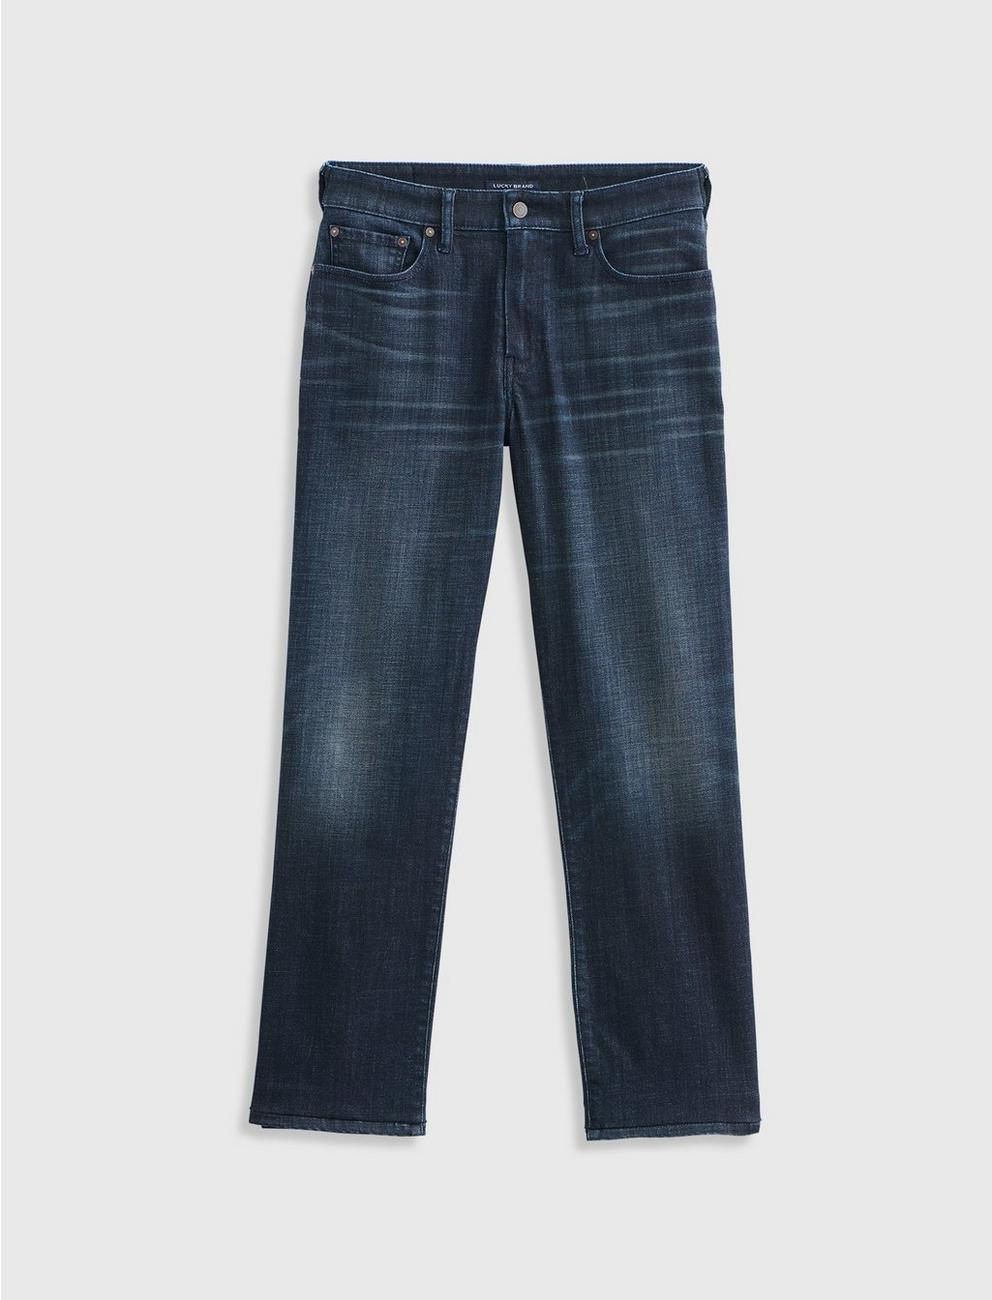 363 VINTAGE STRAIGHT COOLMAX ALL SEASON TECHNOLOGY JEAN, HURON